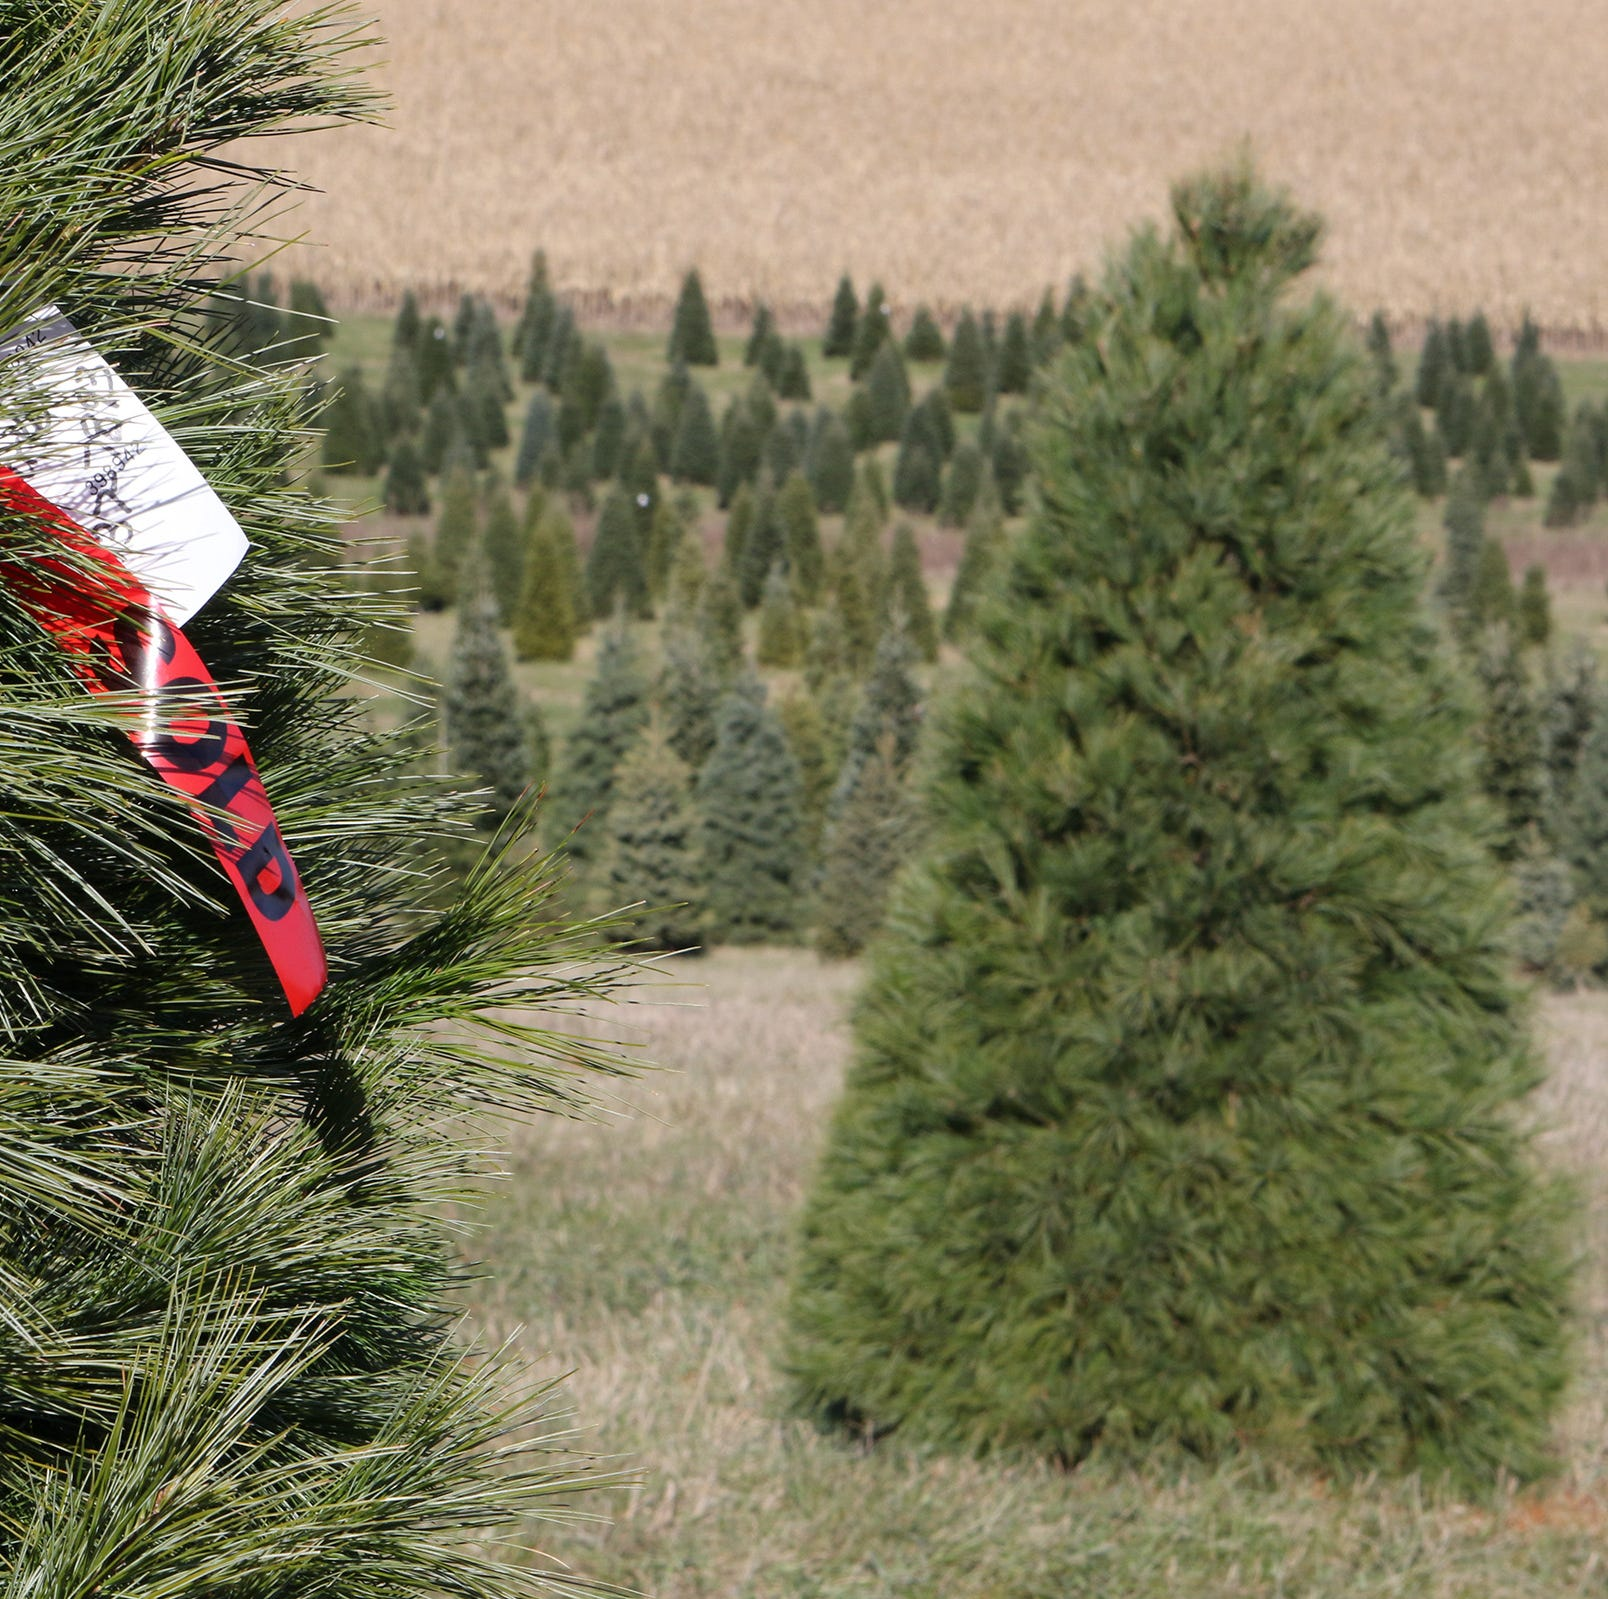 Where to cut your own Christmas tree in the Tristate